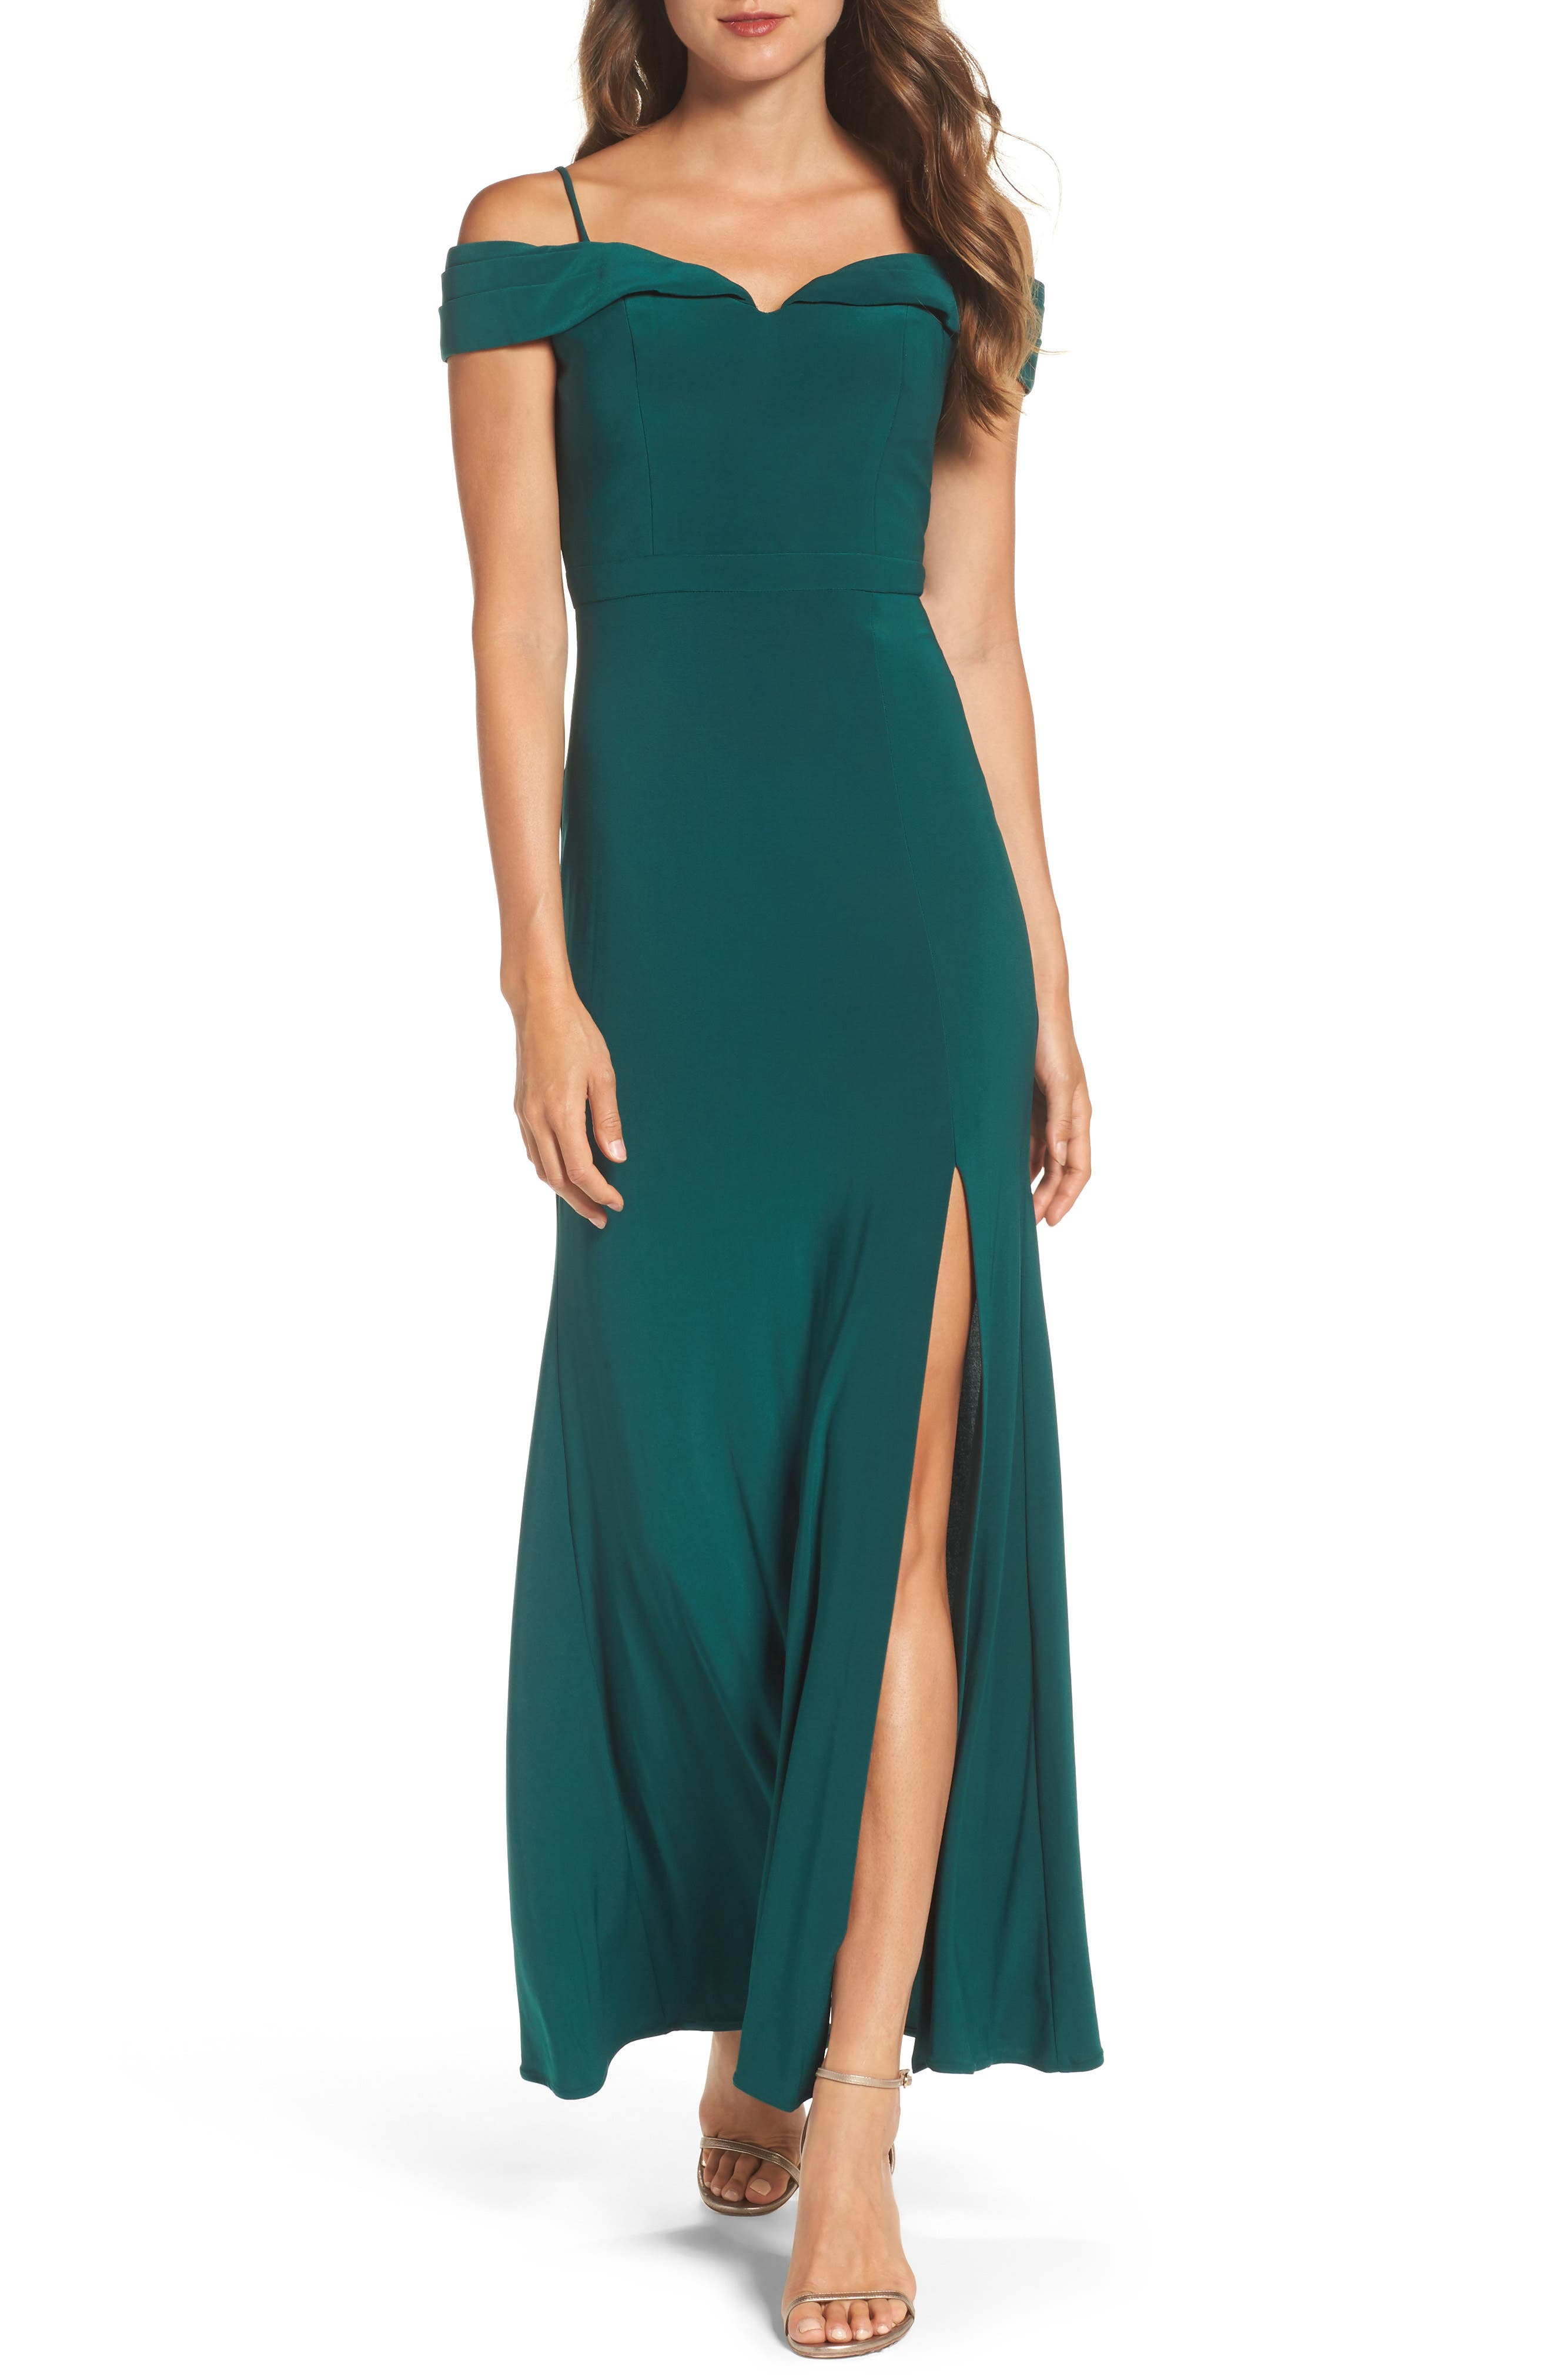 Morgan & Co. Off The Shoulder Gown, /4 - Green